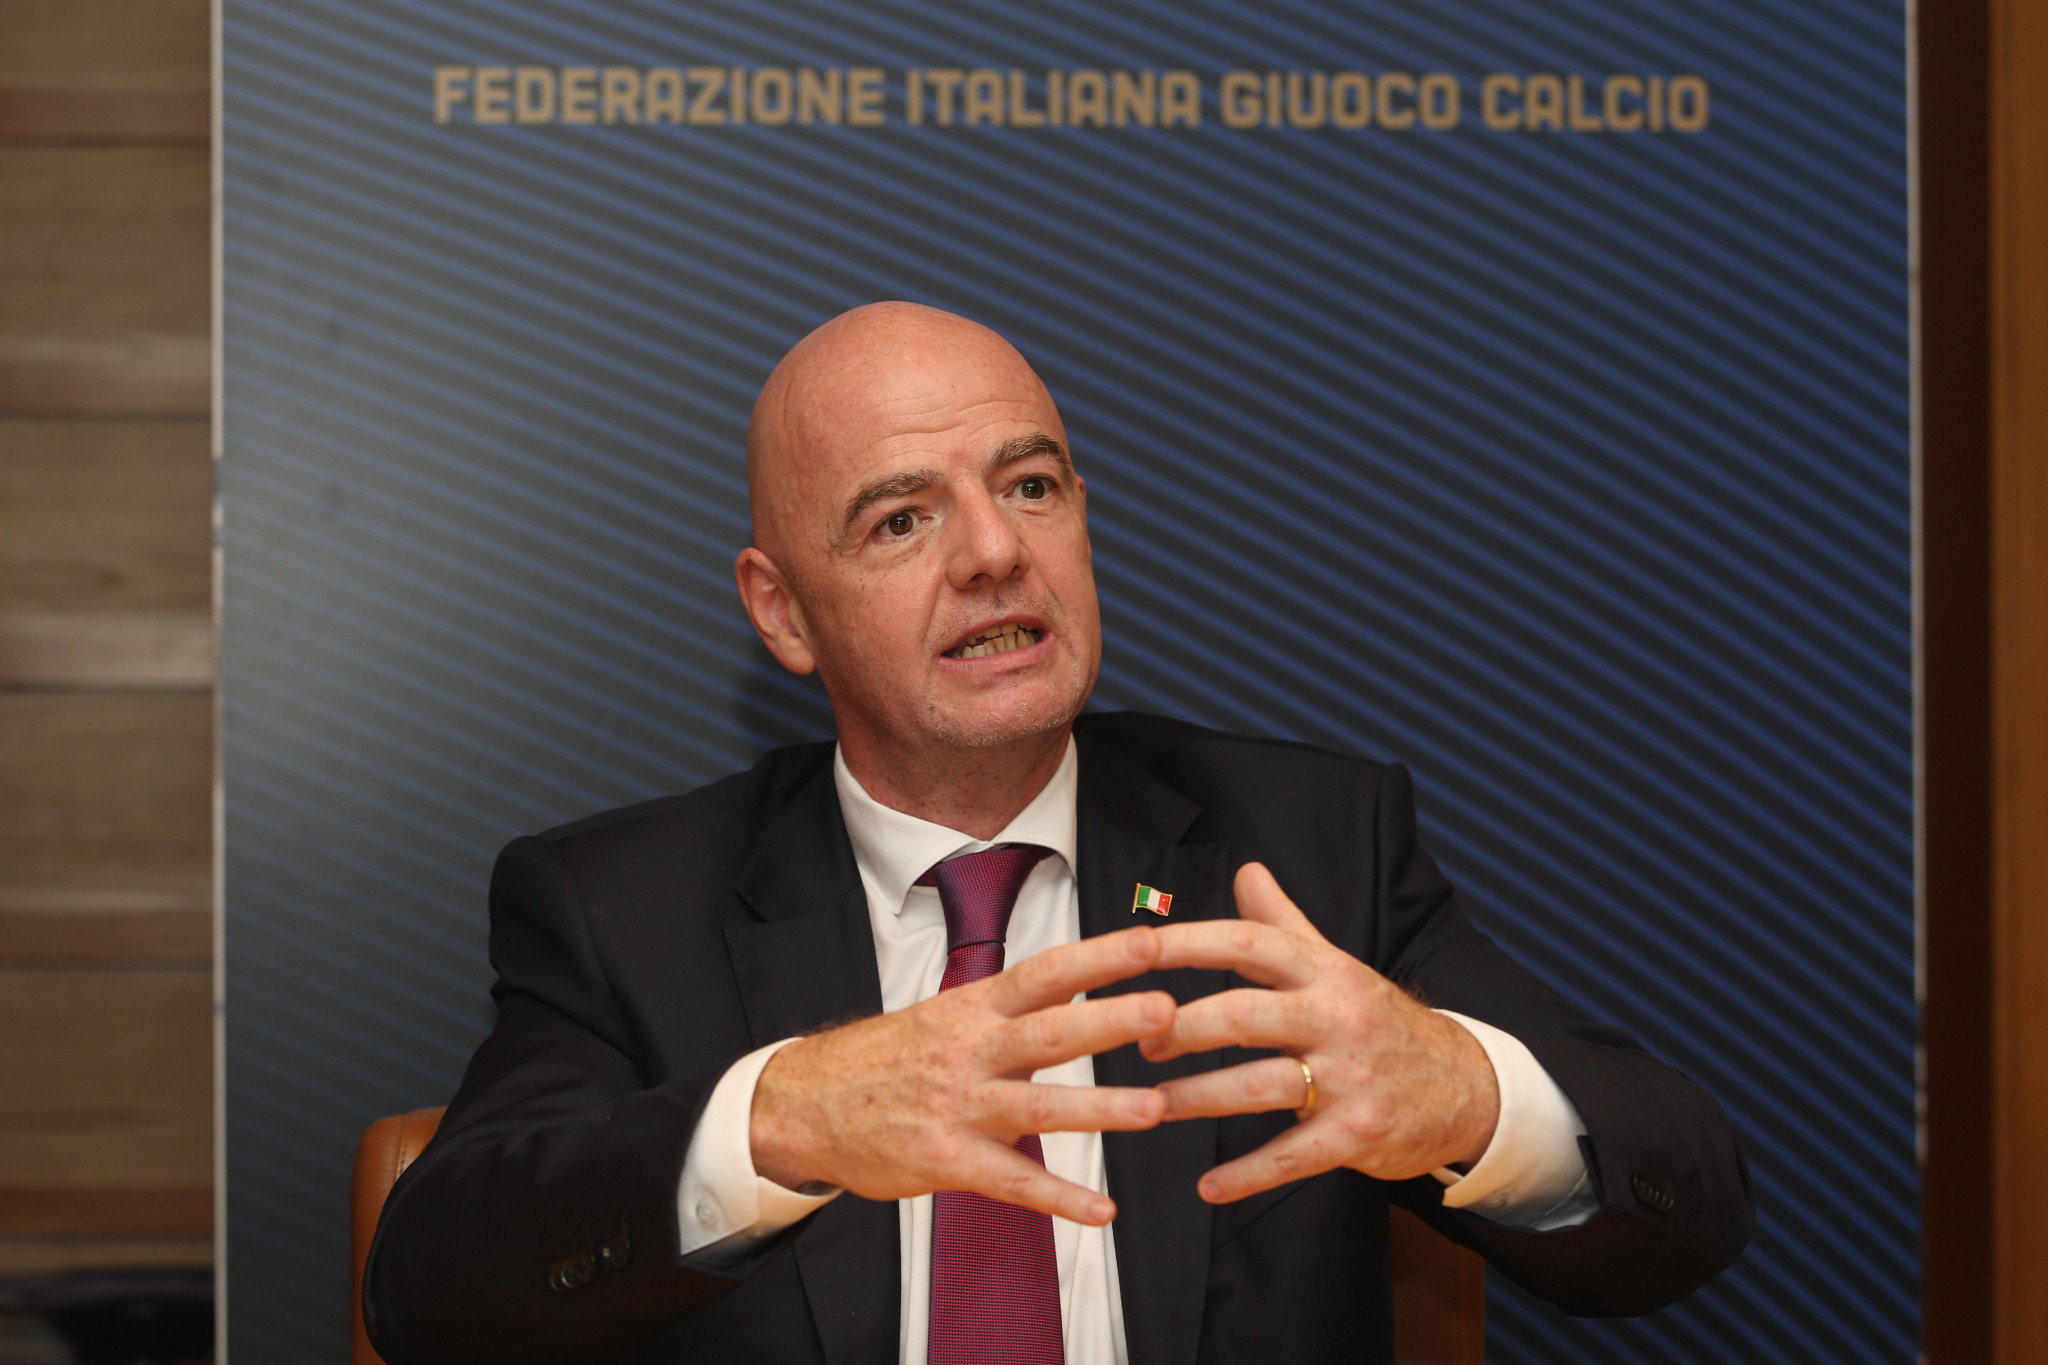 FIFA President Gianni Infantino has said the establishment of the Global Integrity Programme is